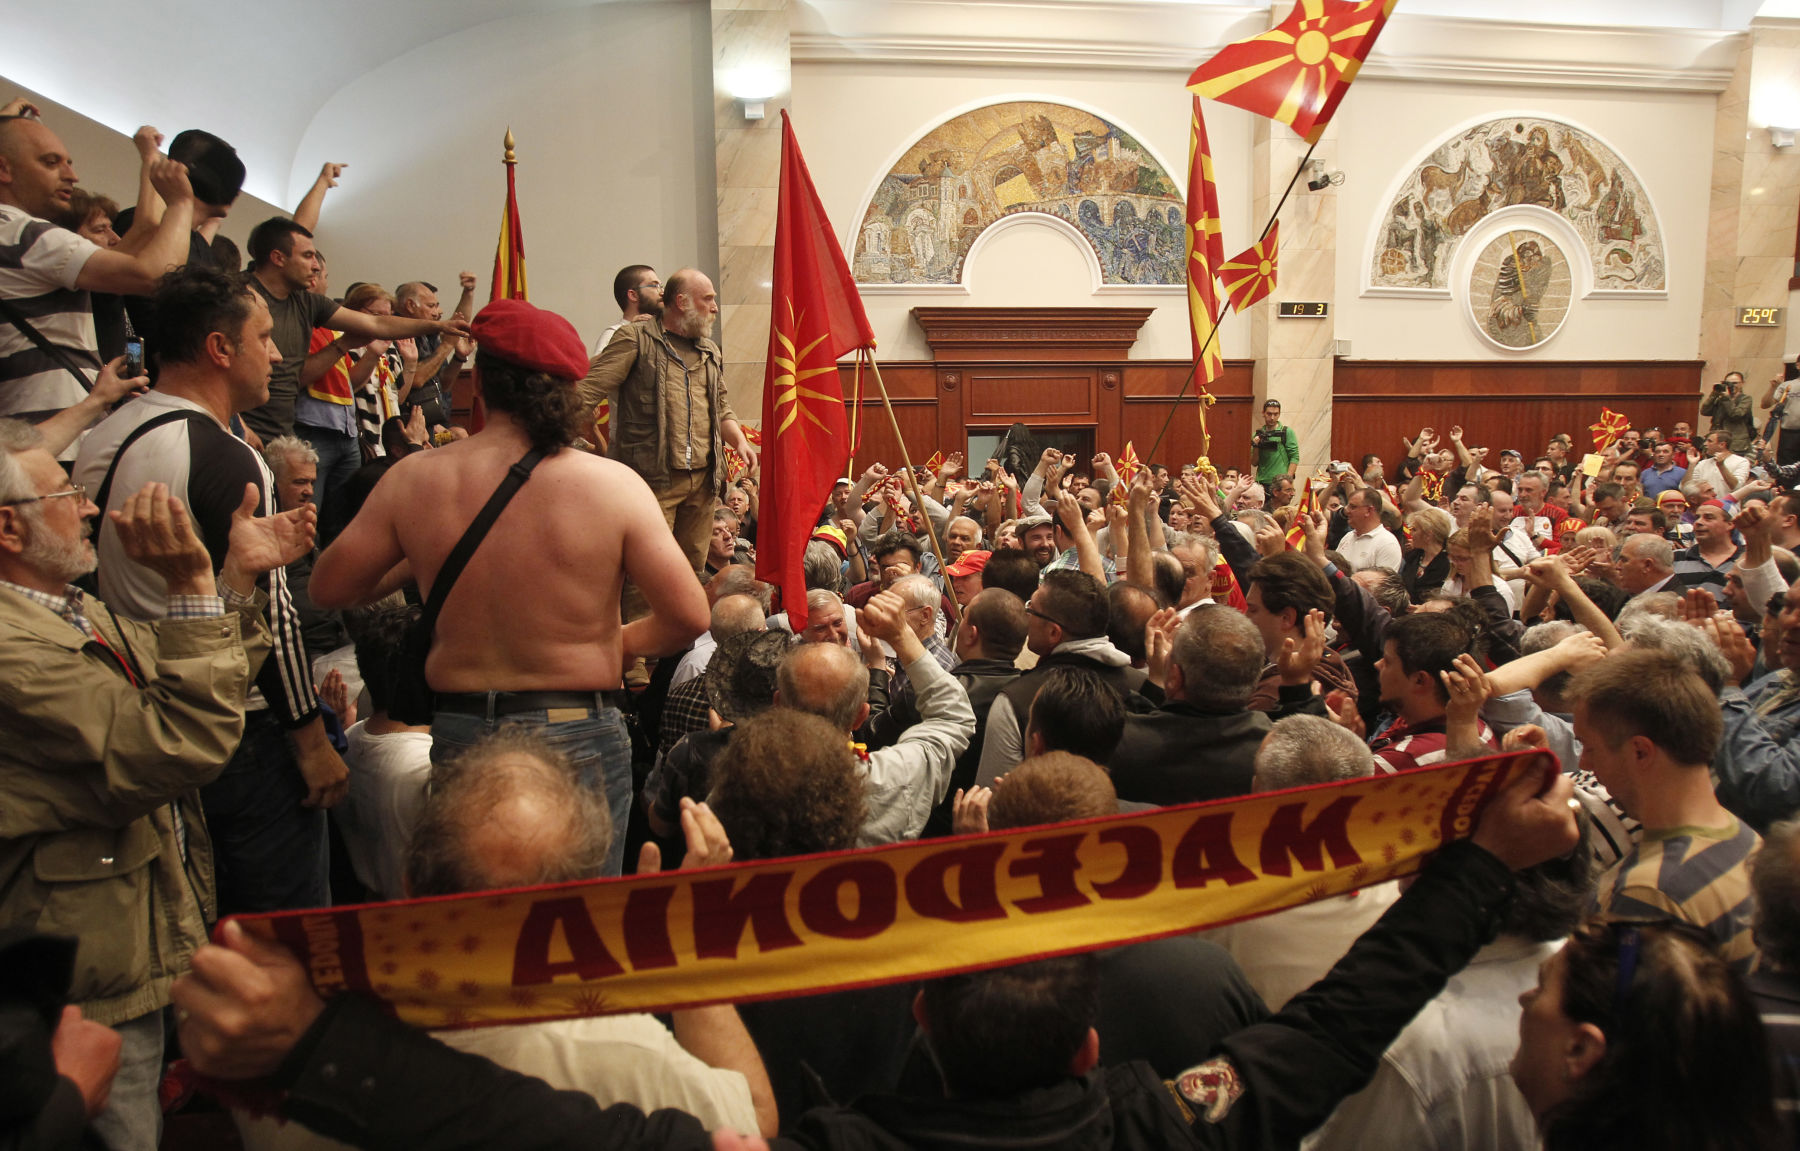 Macedonian crisis erupts in violence